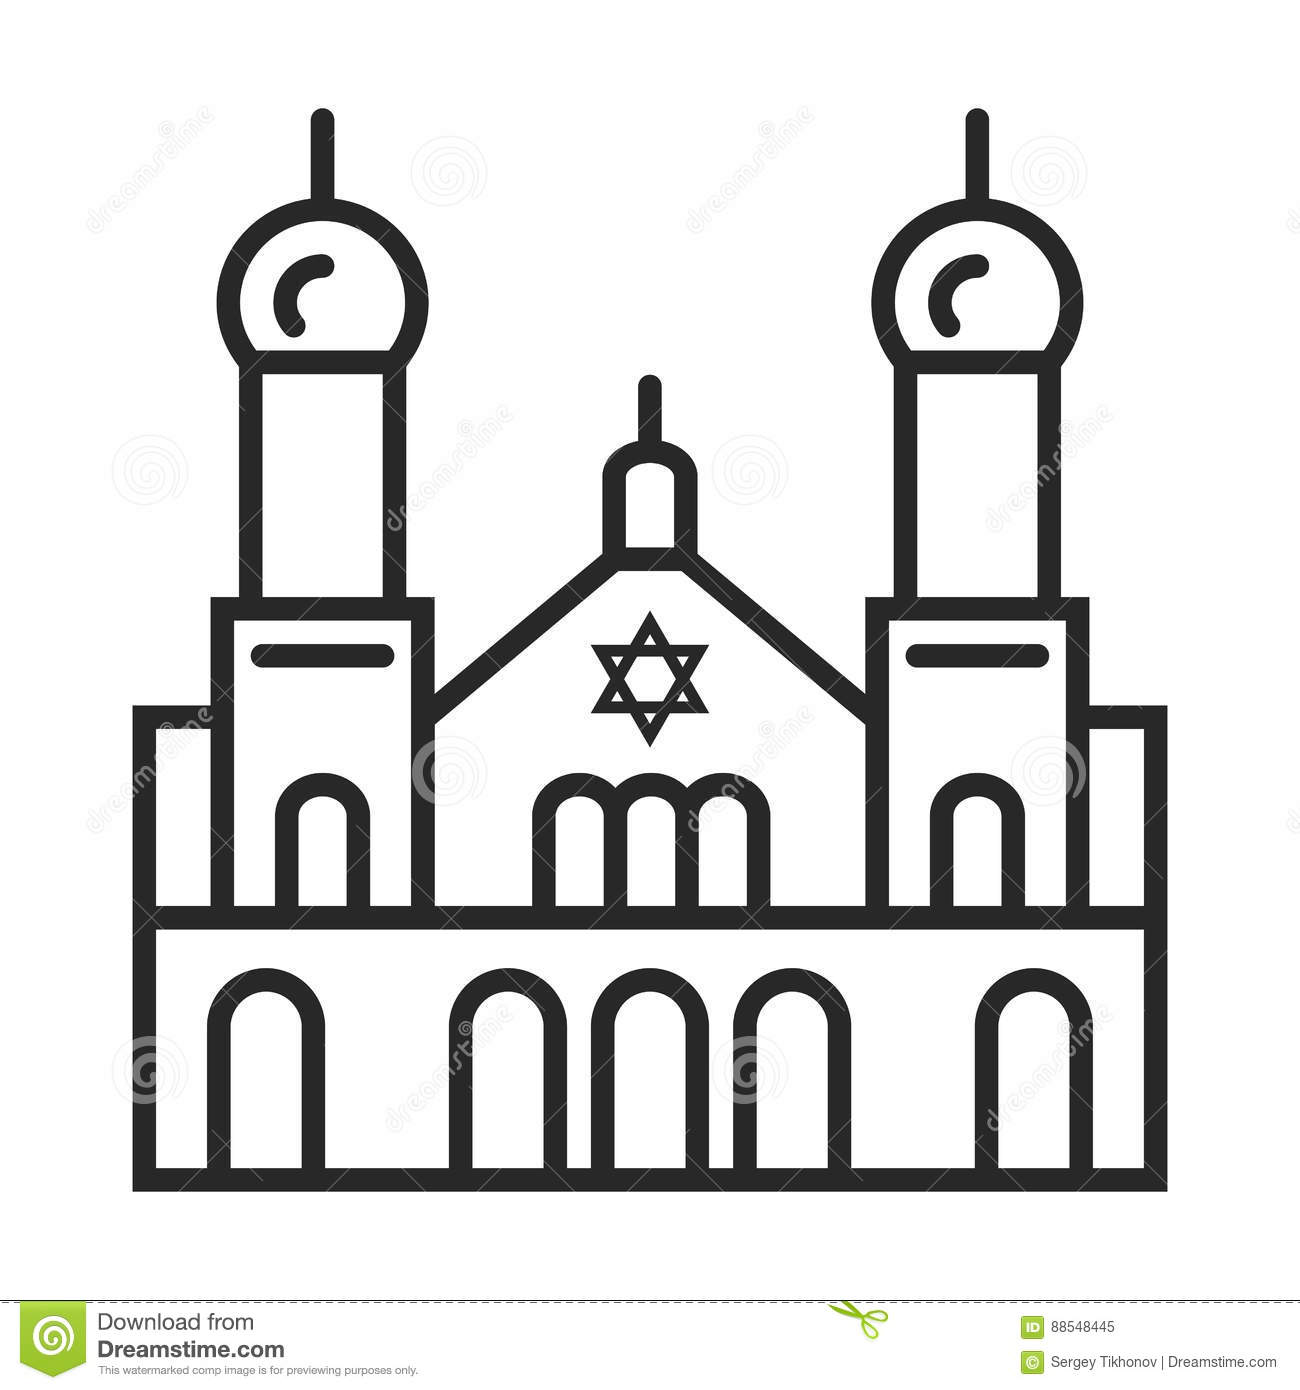 Synagogue icon stock illustration. Illustration of church